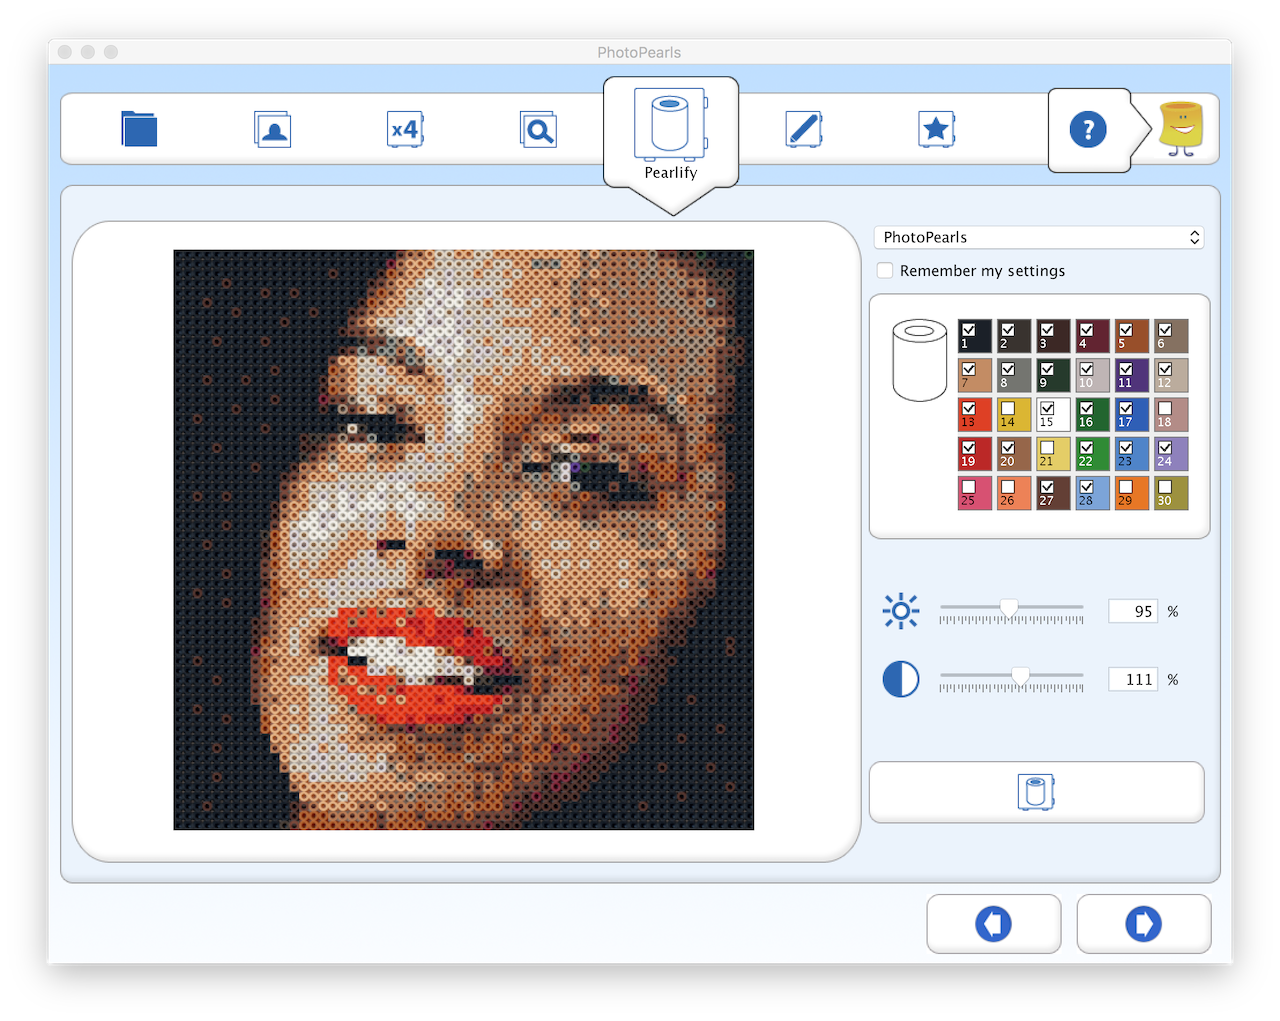 Screenshot of the PhotoPearls software